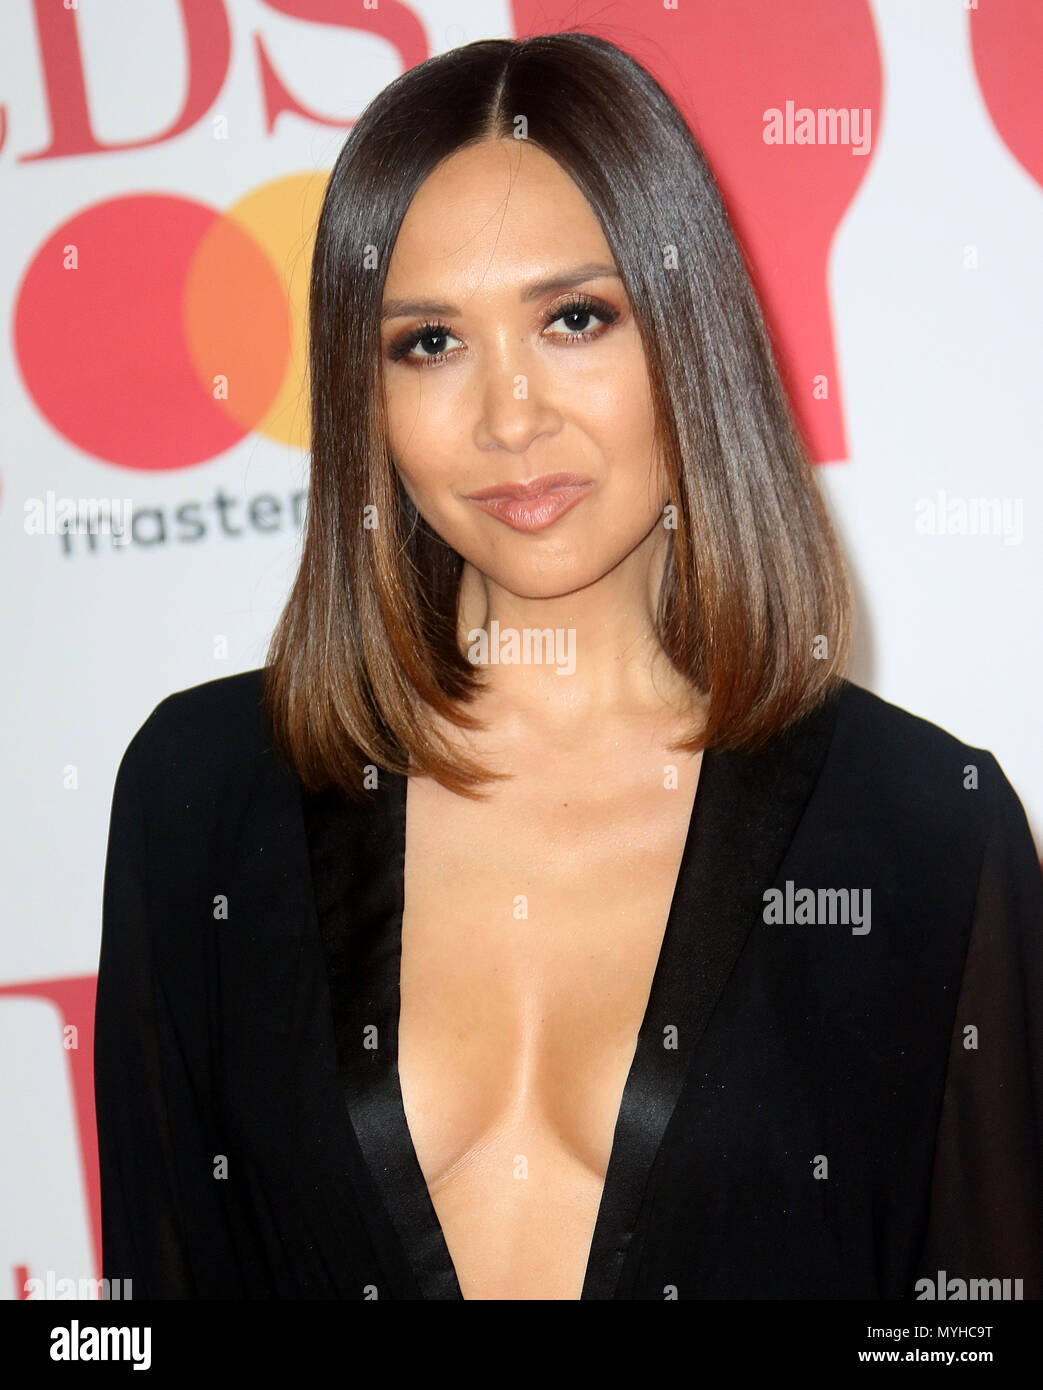 6e1a9d298ca76f Feb 21, 2018 - Myleene Klass attending the BRITS Awards 2018 at O2 Arena in